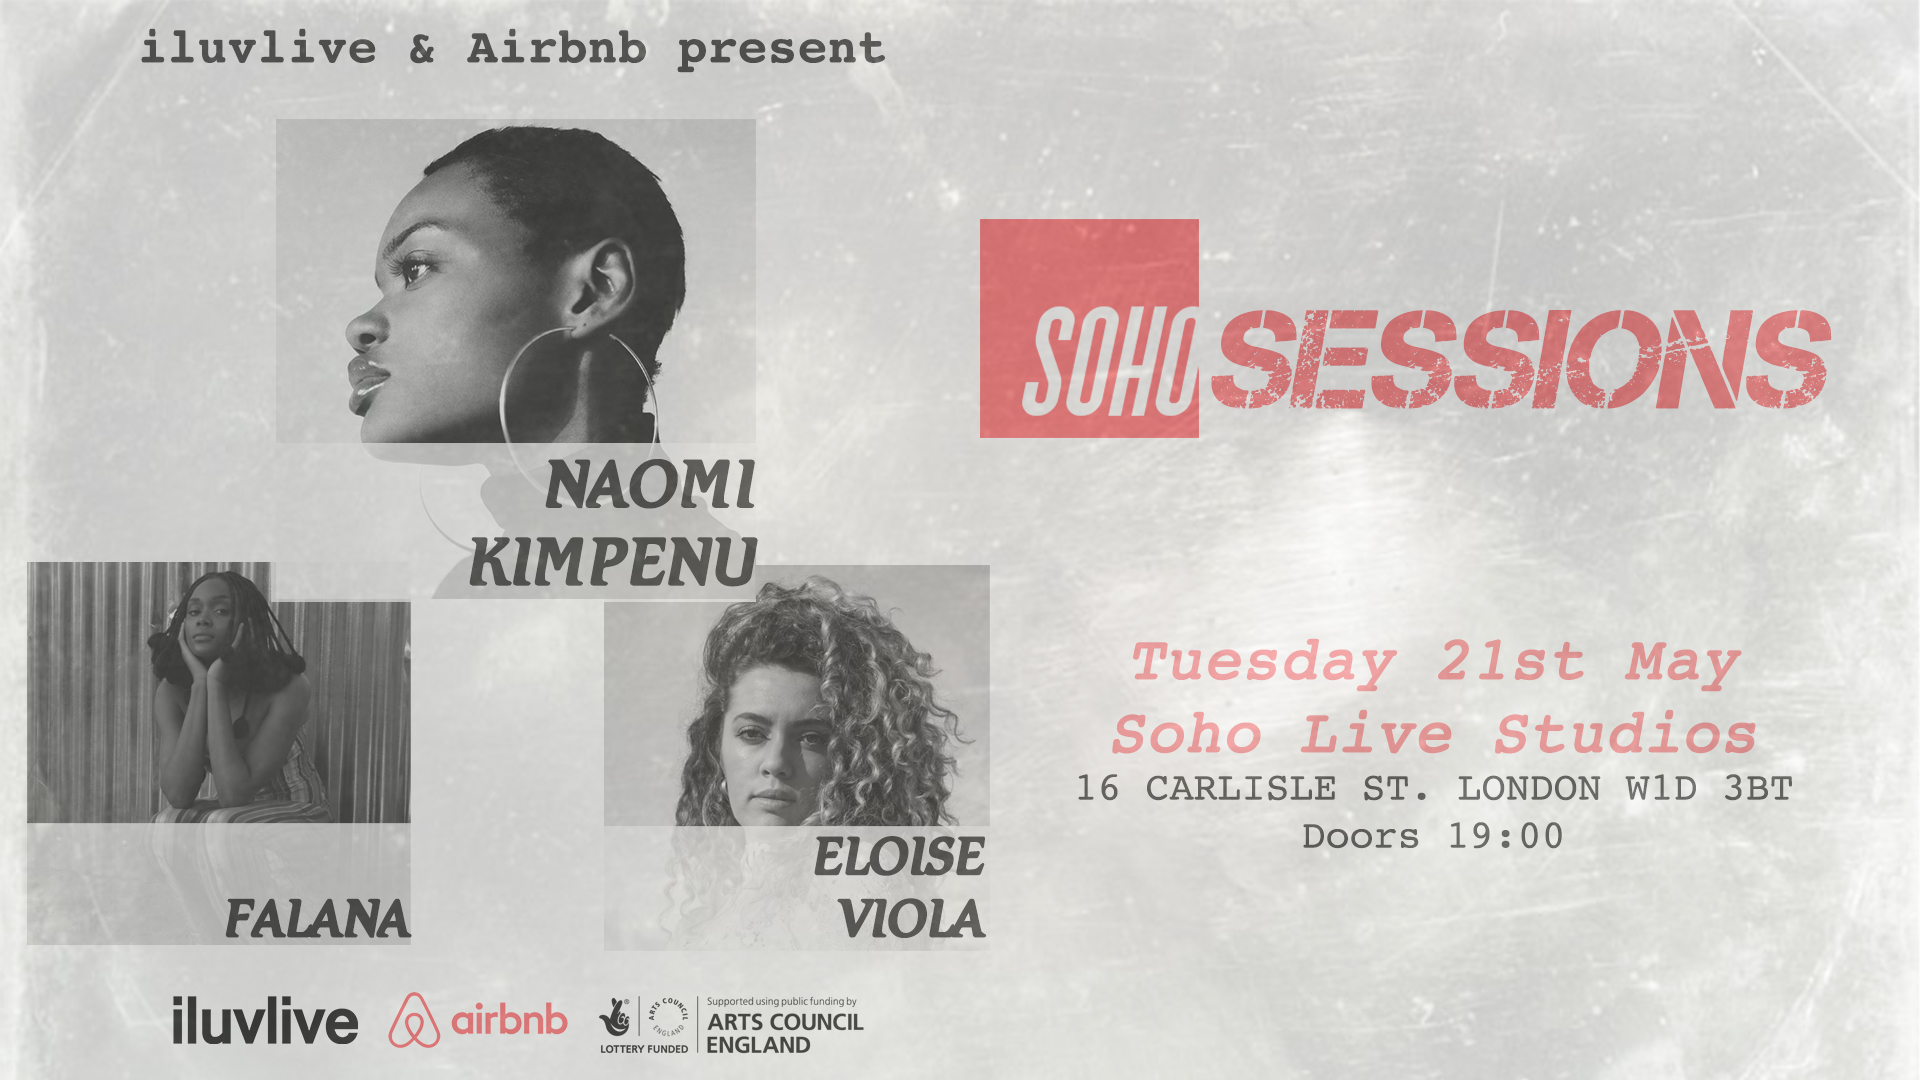 Soho Sessions Airbnb FB Banner May 2019.jpg